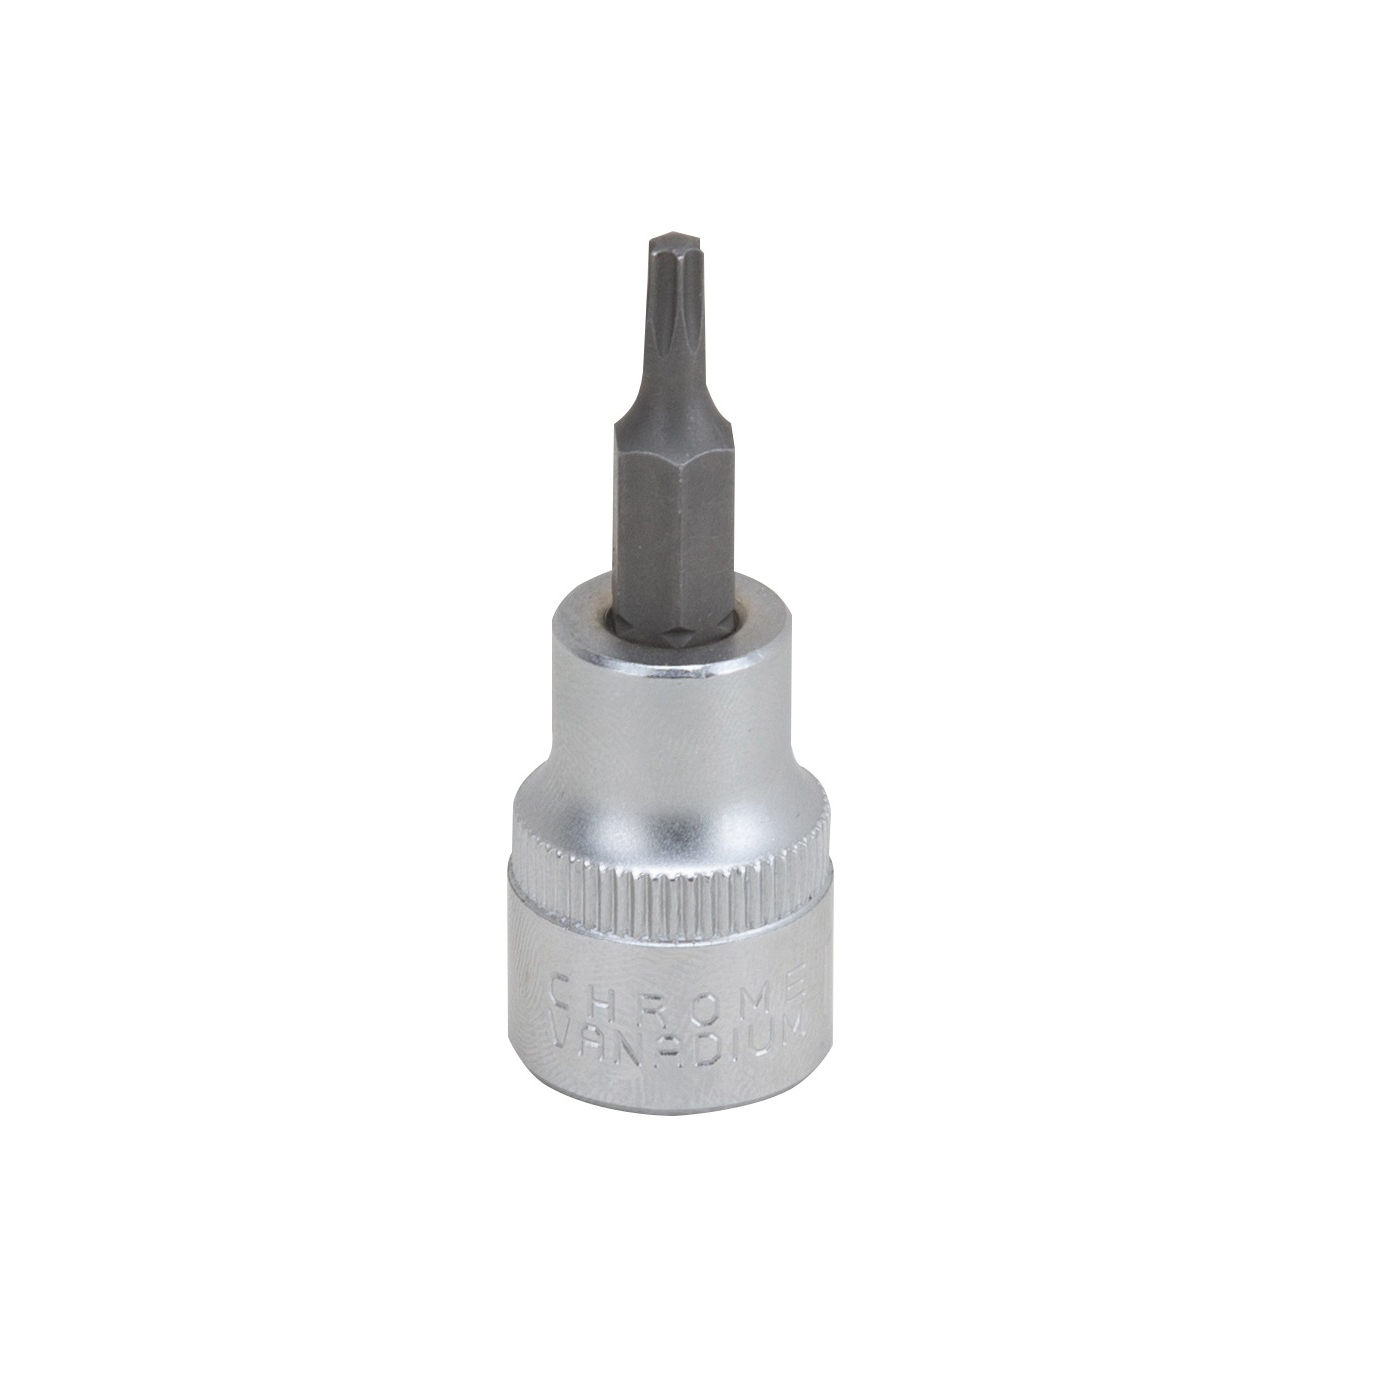 Picture of Vulcan 3505002720 Fractional Star Bit Socket, T15 Tip, 3/8 in Drive